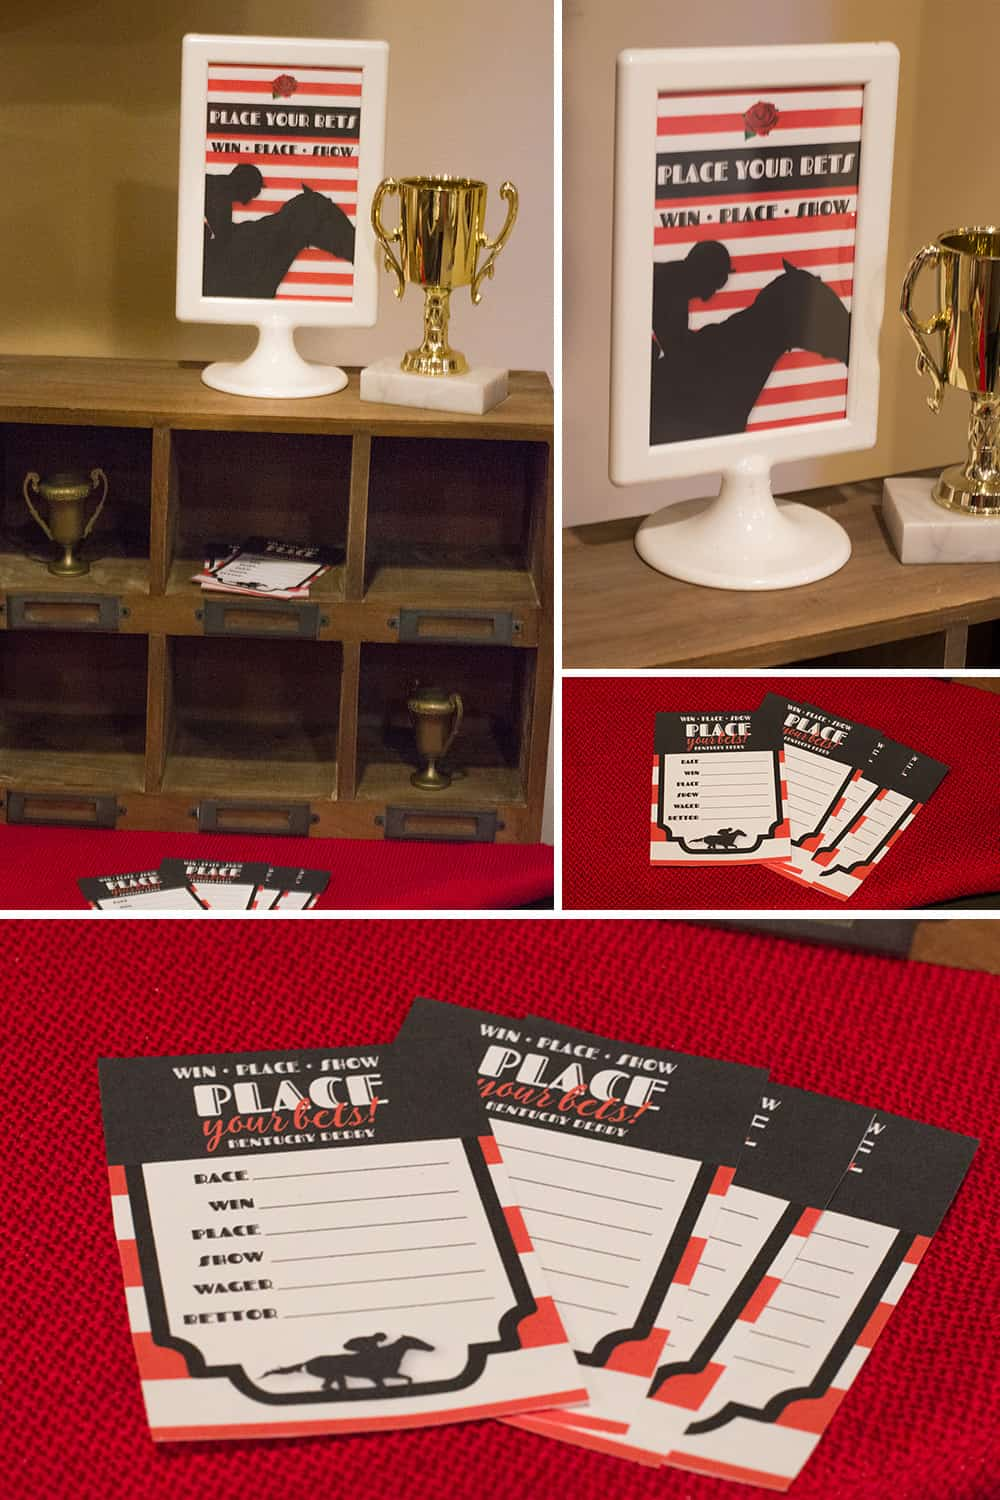 Kentucky Derby Betting Slips and sign. Download your free set at elvamdesign.com